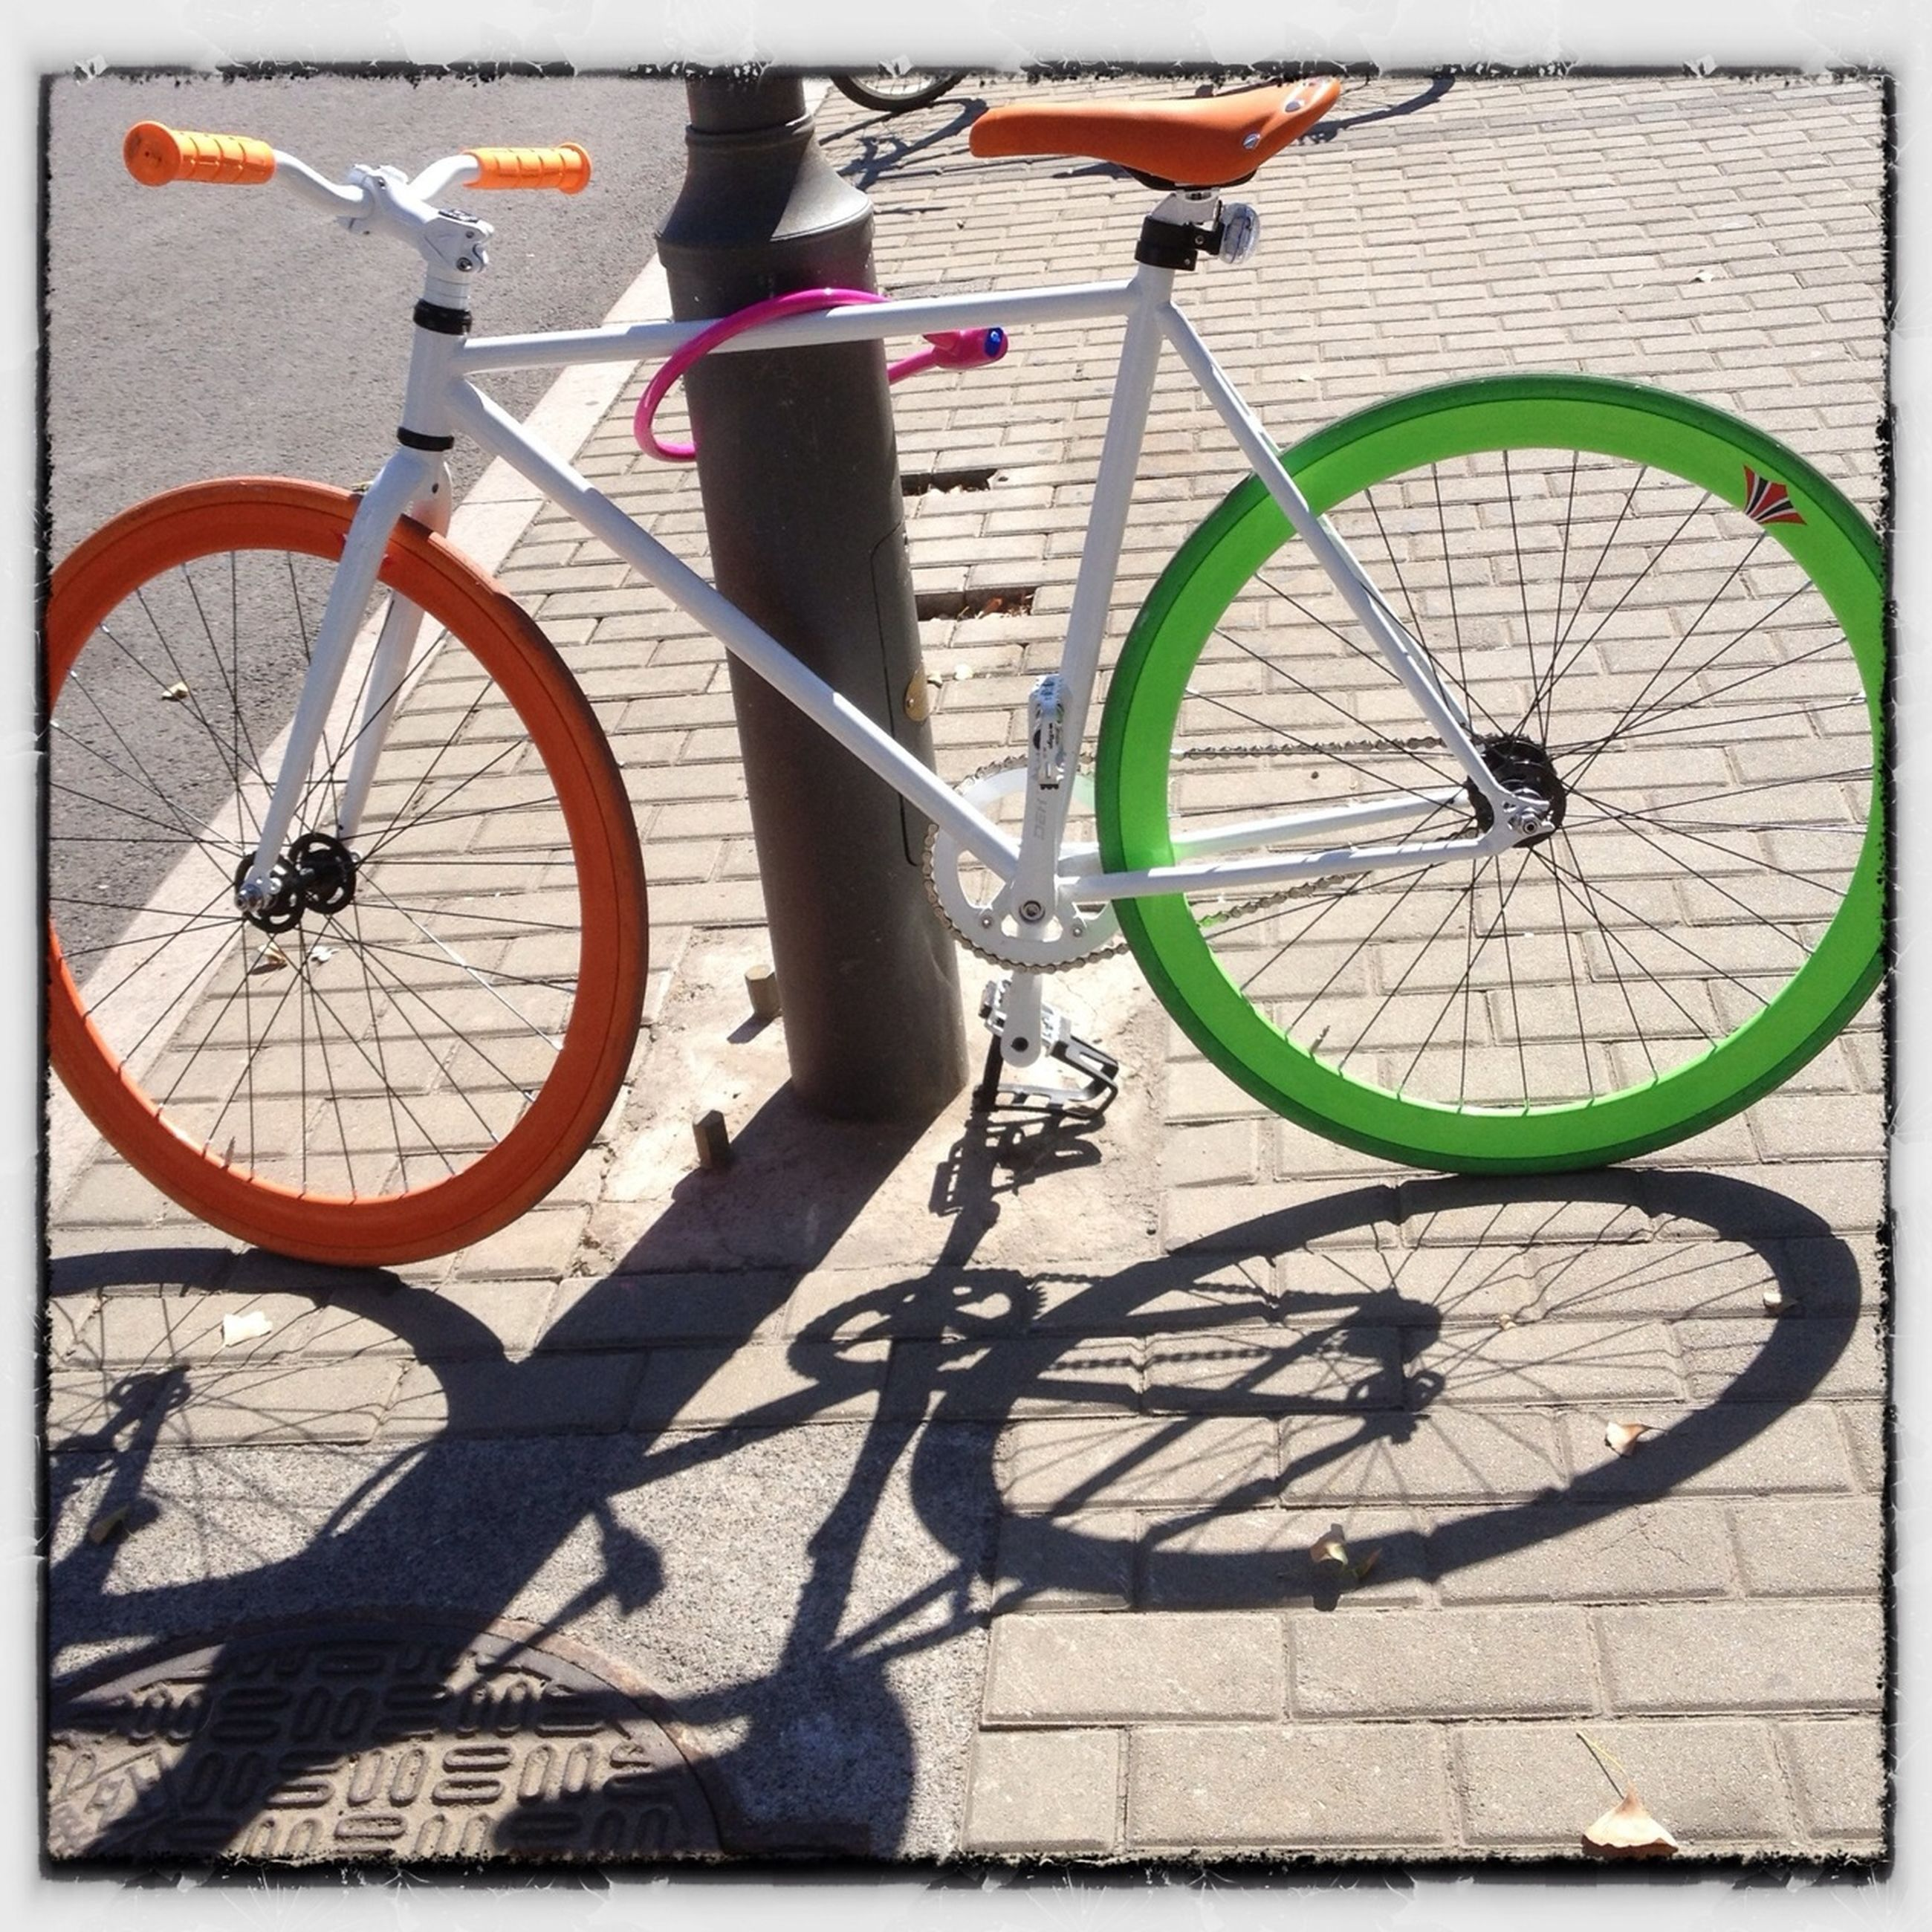 bicycle, transportation, mode of transport, transfer print, land vehicle, stationary, parked, parking, auto post production filter, wheel, street, day, shadow, cycling, sunlight, outdoors, cycle, travel, pole, built structure